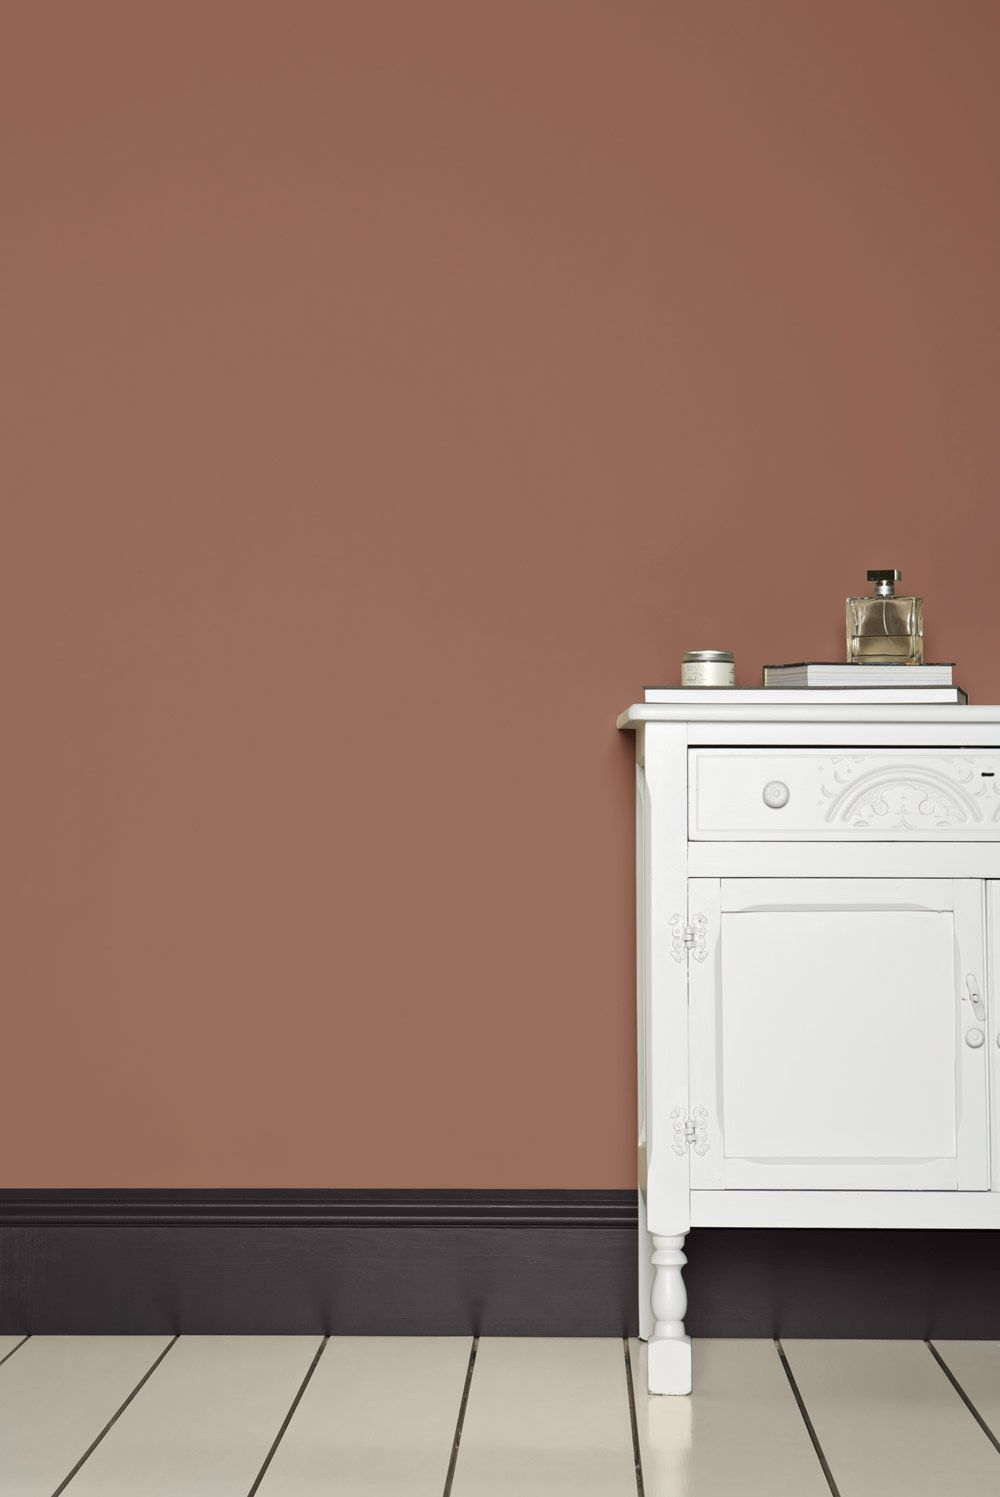 Modern country style farrow and ball pale powder colour case study - Explore Our Distinctive Palette Of 132 Paint Colours And Discover Handcrafted Wallpapers Gathering Ideas To Help Transform Your Home With Farrow Ball